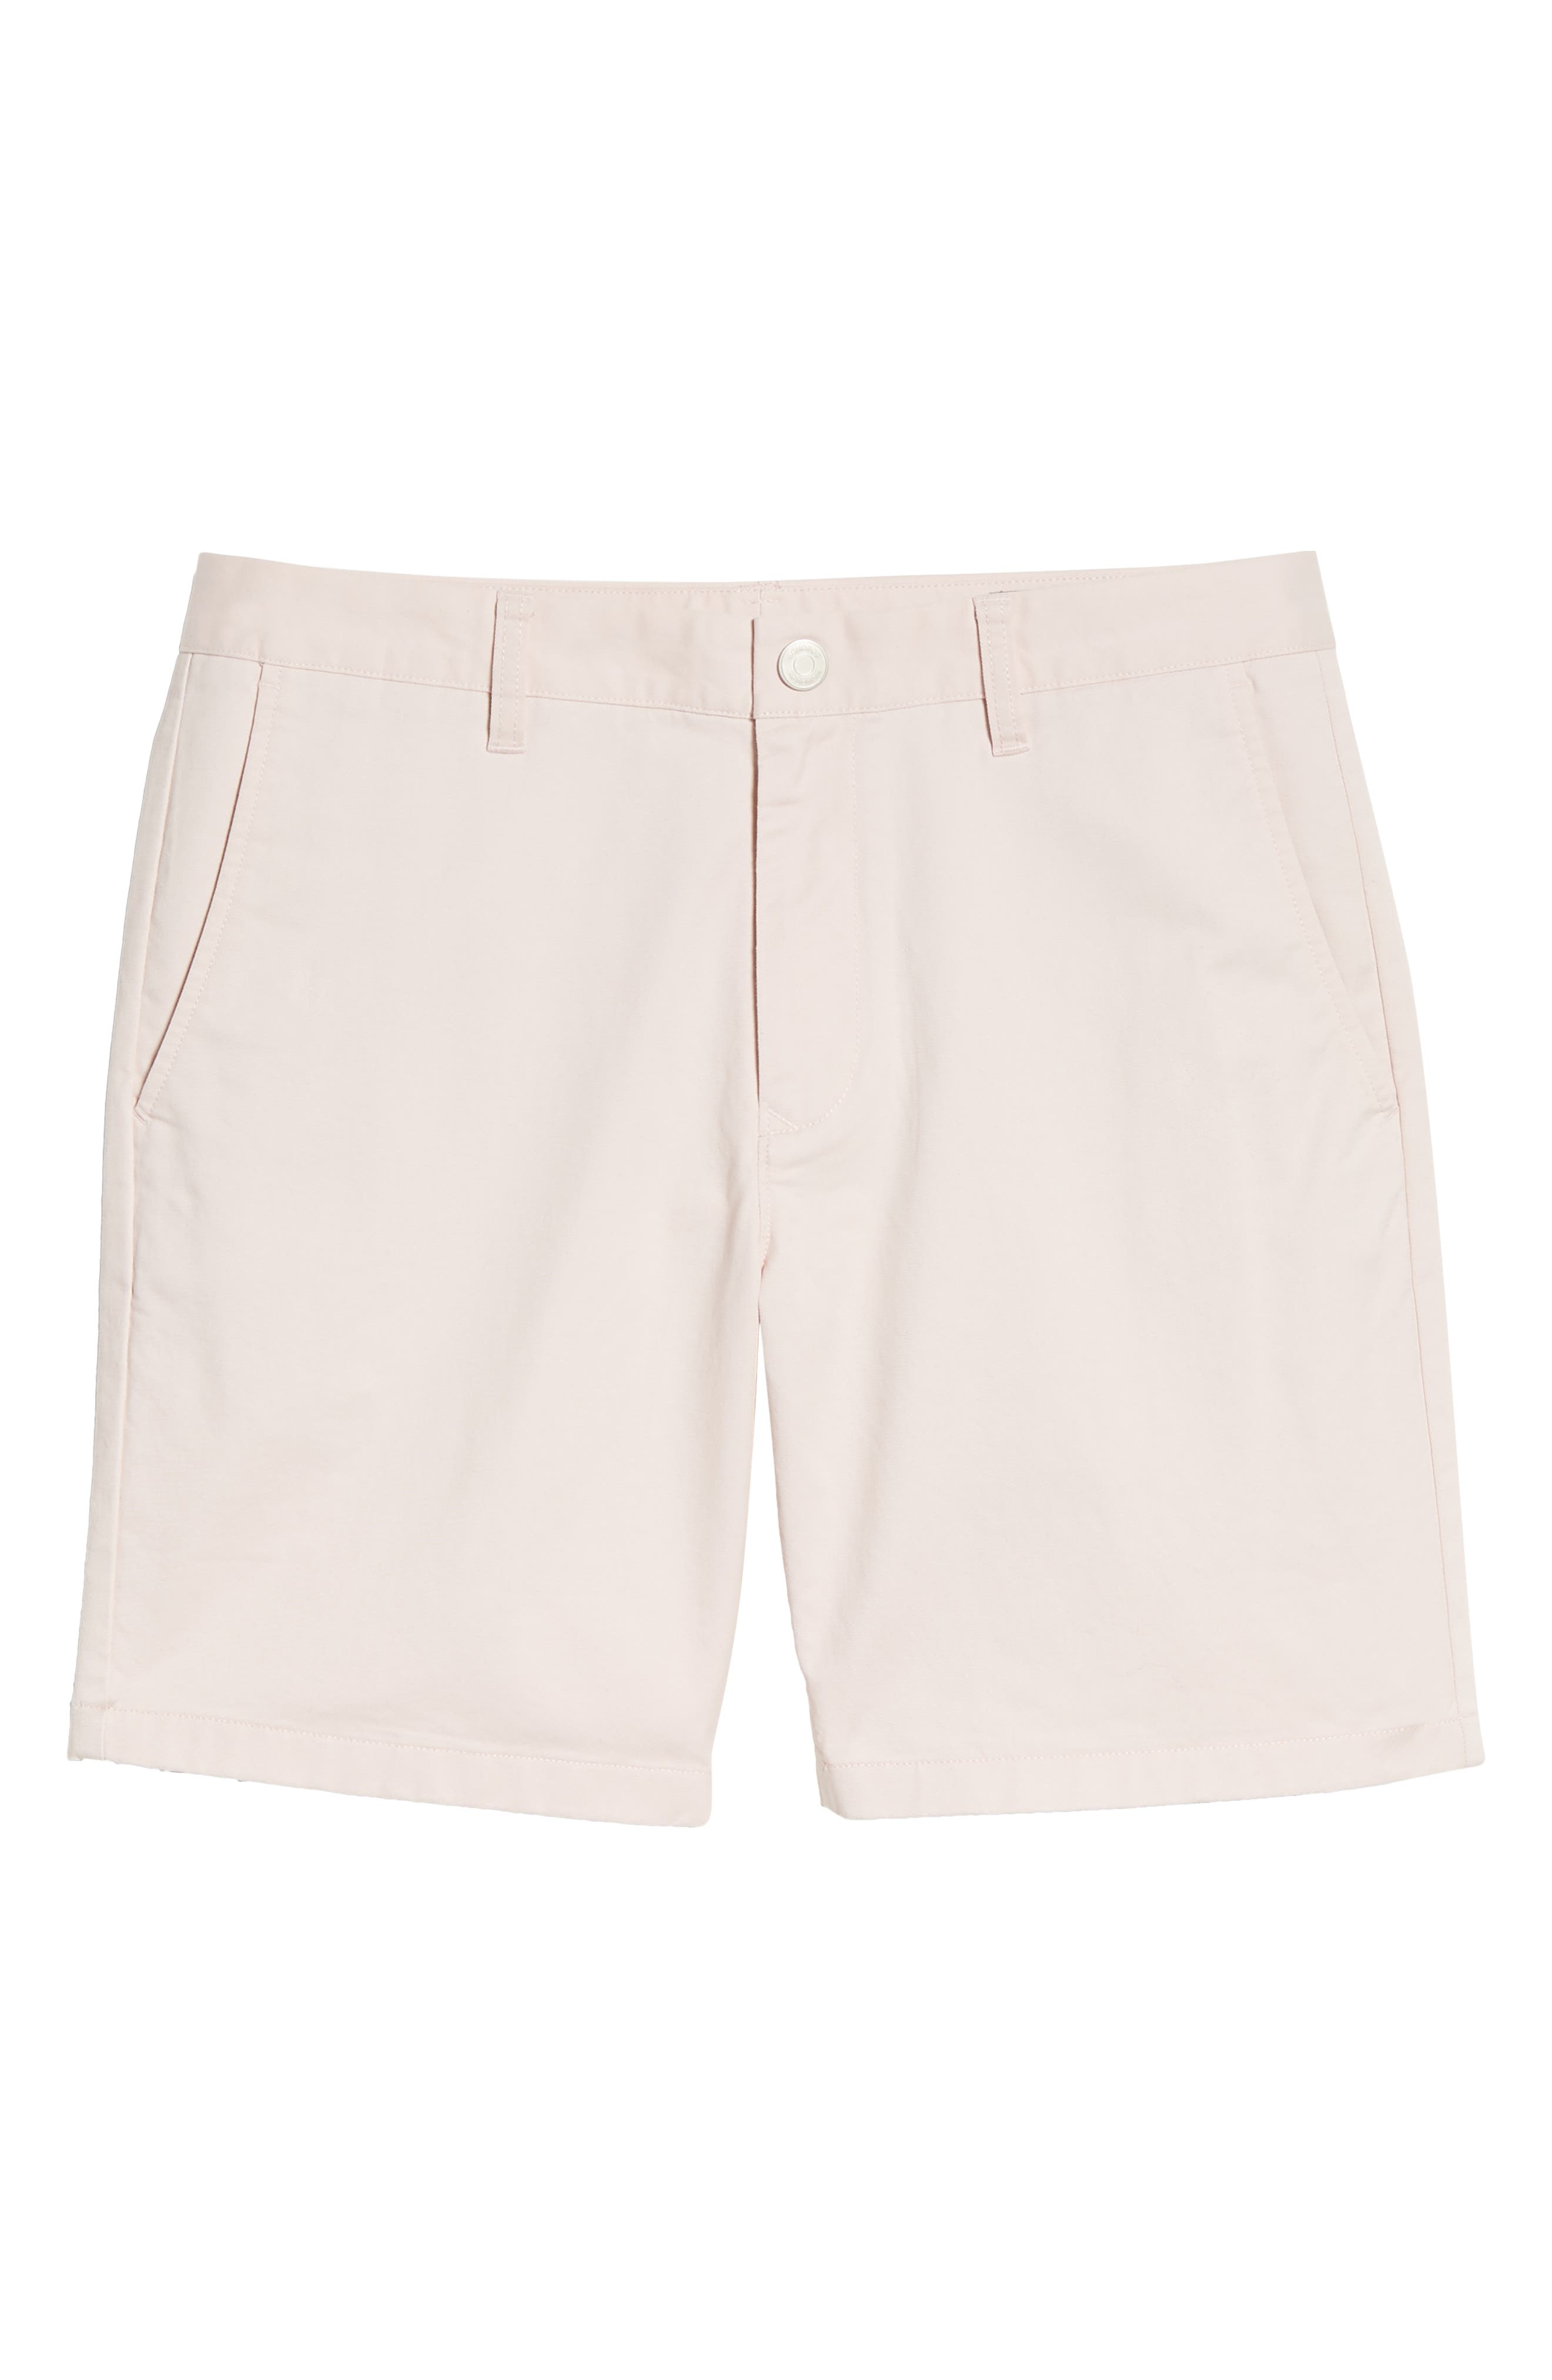 Stretch Chino 7-Inch Shorts,                             Alternate thumbnail 74, color,